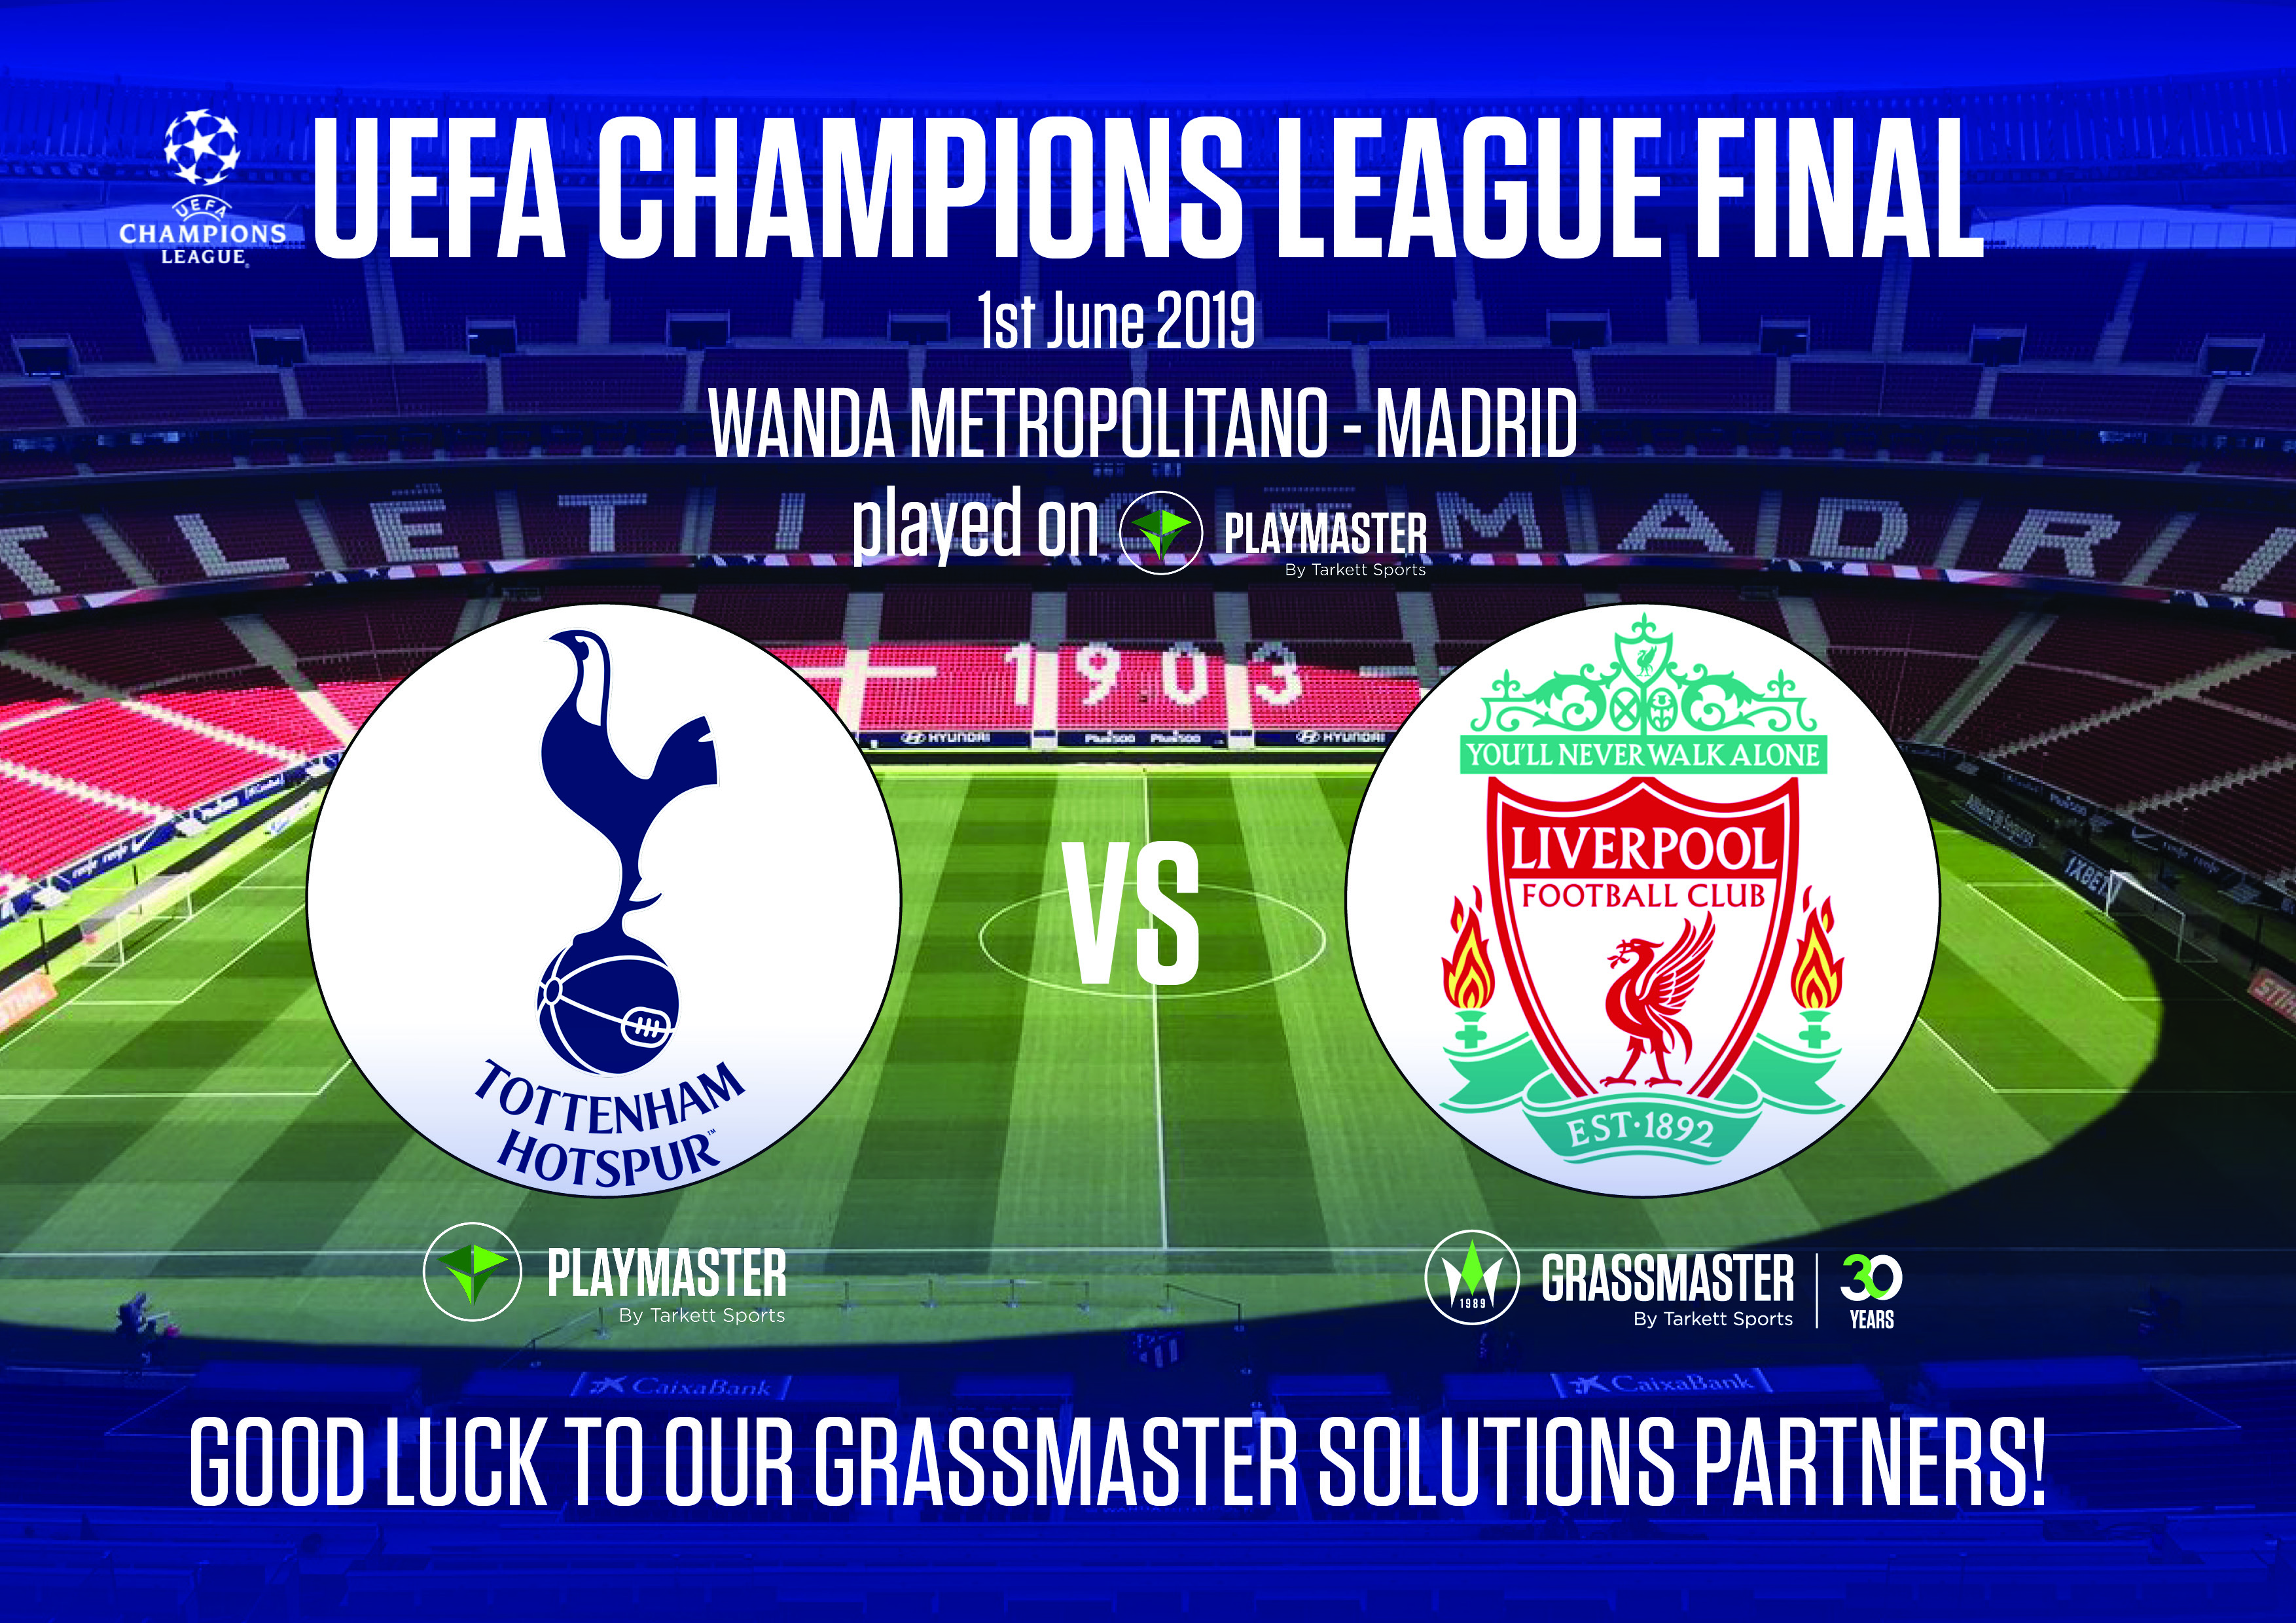 UEFA Champions League Final @Wanda Metropolitano Stadium, GrassMaster Solutions, by Tarkett Sports will be part of the game!